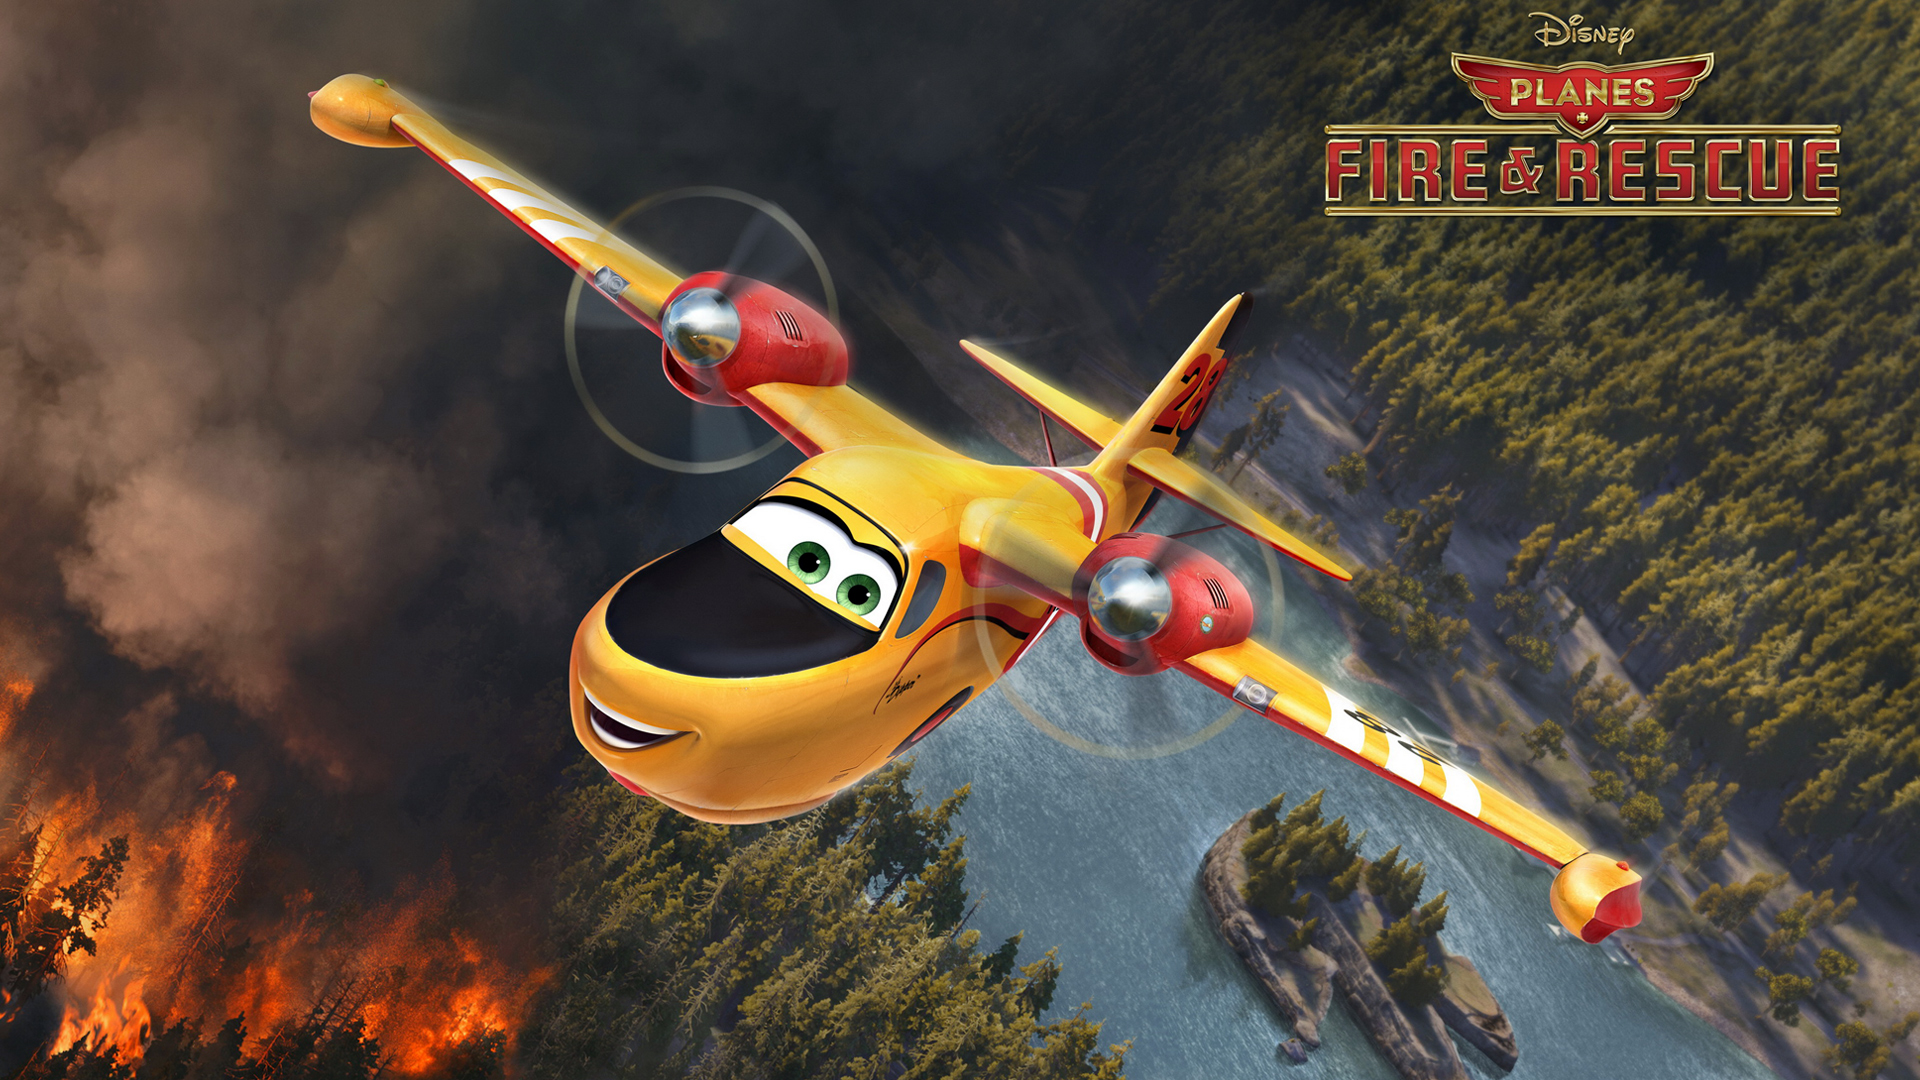 Lil dipper planes 2014 wallpaper hd lil dipper planes fire and rescue movie voltagebd Images